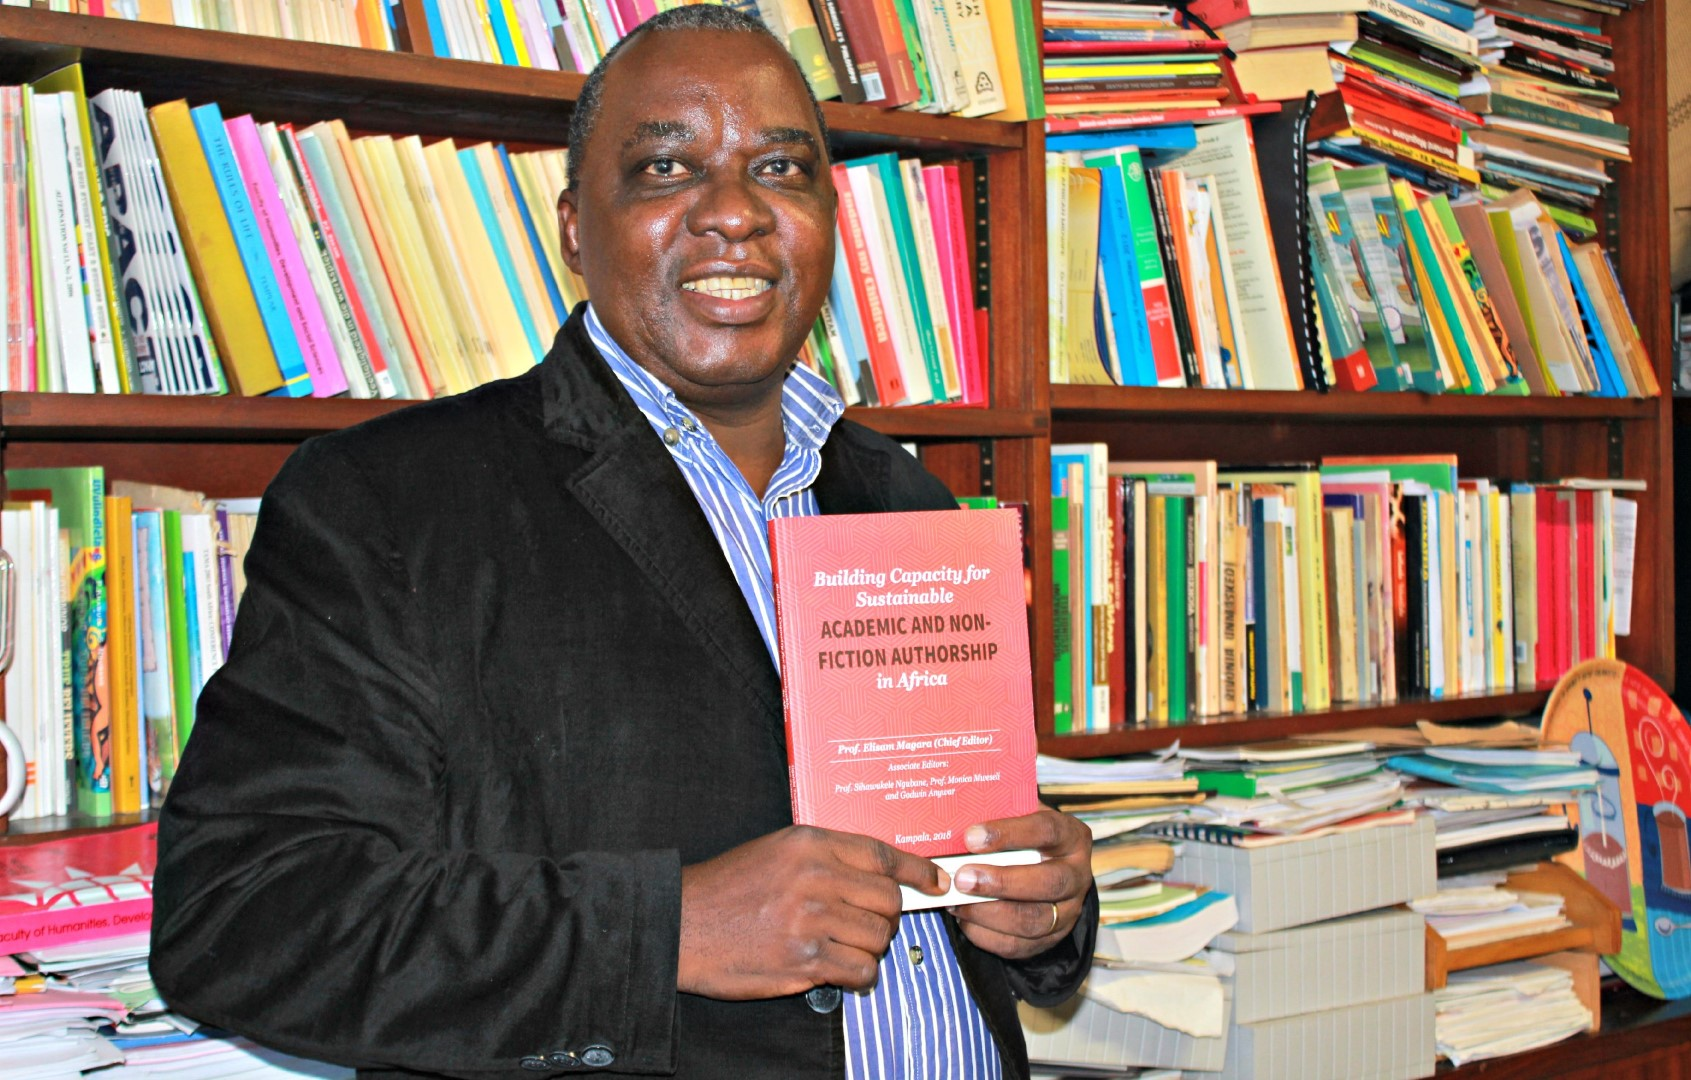 Professor Sihawukele Ngubane with his book, Building Capacity for Sustainable Academic and Non-Fiction Authorship in Africa.